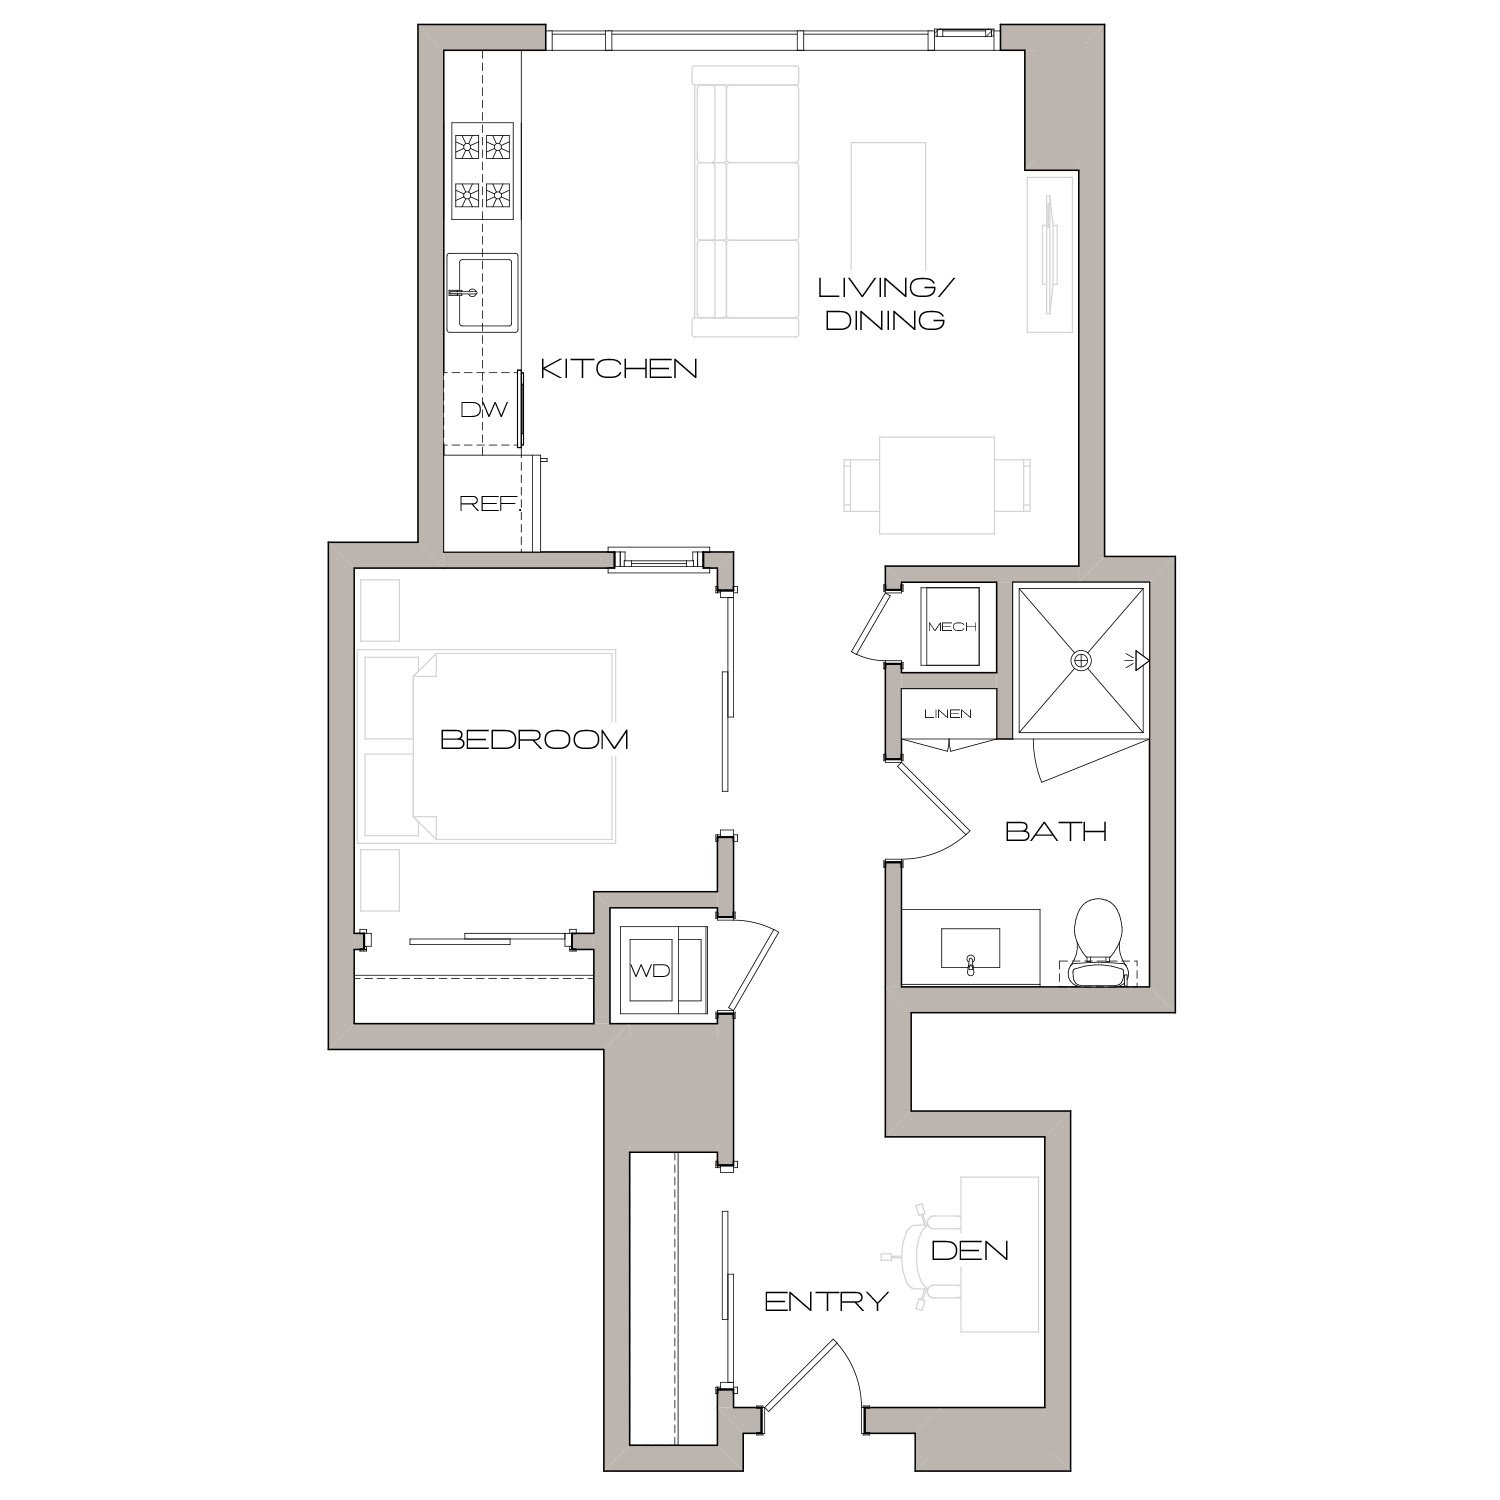 A 1 U floor plan diagram. One bedroom, one bathroom, an open kitchen and living area, a den, and a washer dryer.